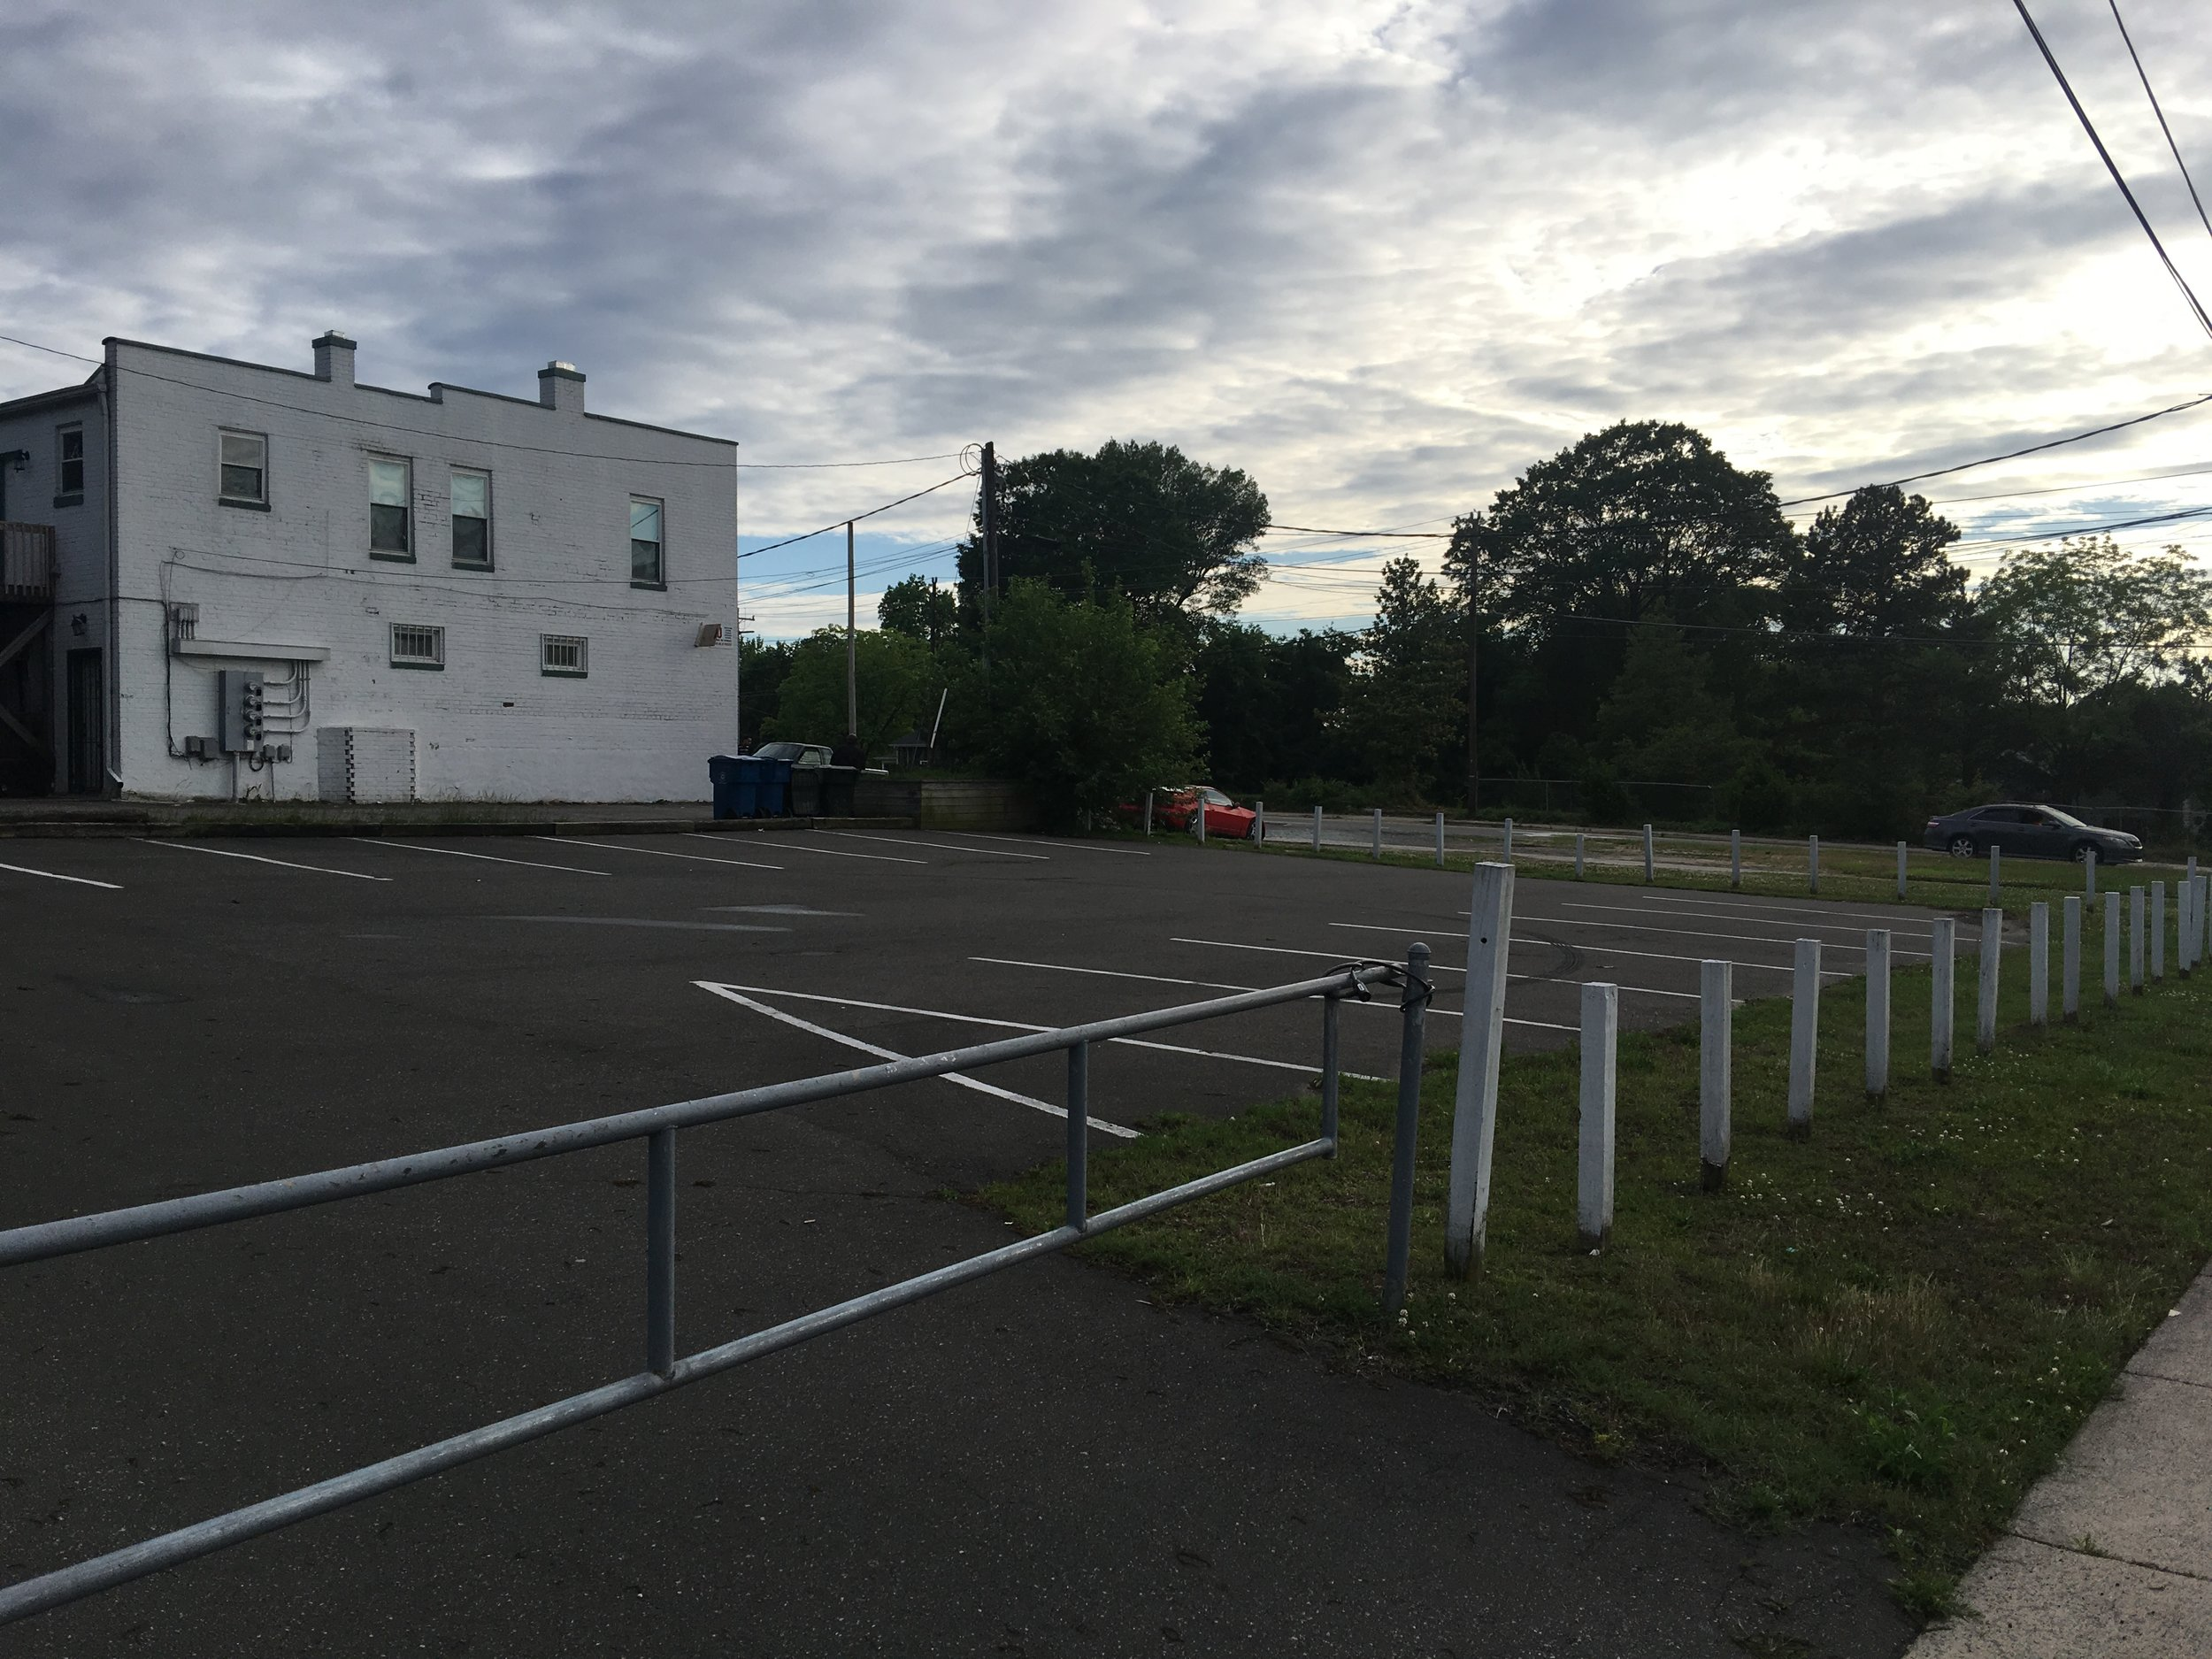 Parking lot 1/3 for Mount Vernon Baptist Church.